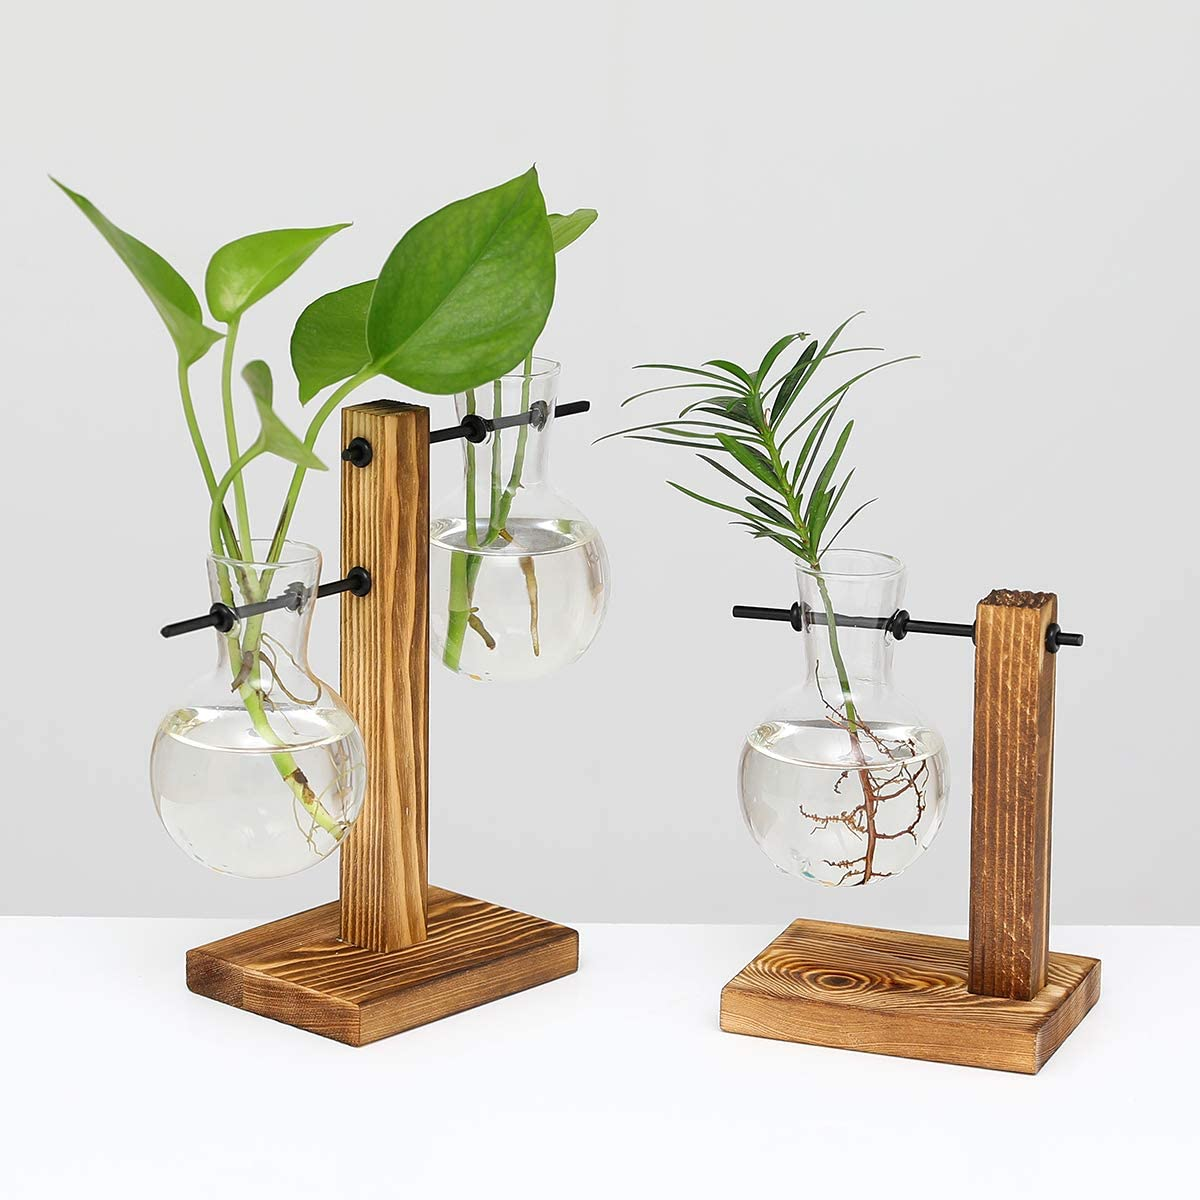 UWIOFF 2 Pack Plant Terrarium with Wooden Stand Air Planter Bulb Glass Vase Propogation Station for Hydroponics Plants Home Garden Office Decoration (3 Bulb Vase)